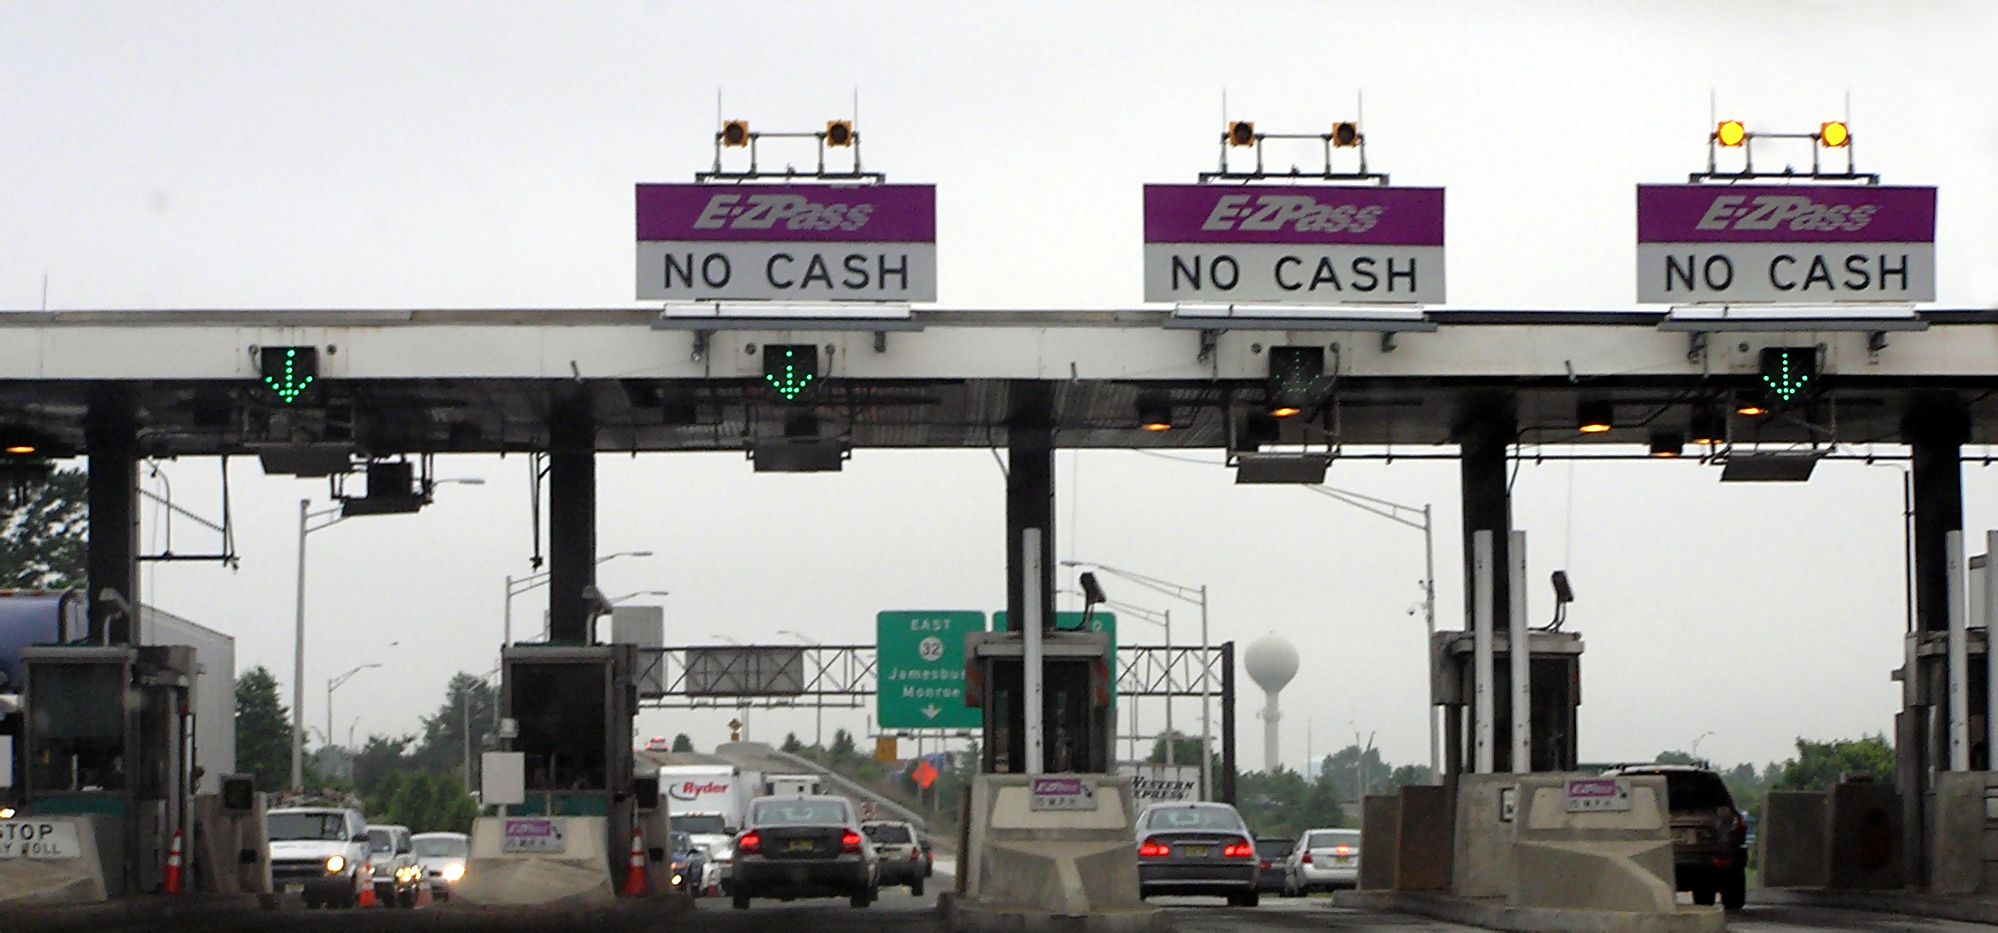 A toll gate along the New Jersey Turnpike.